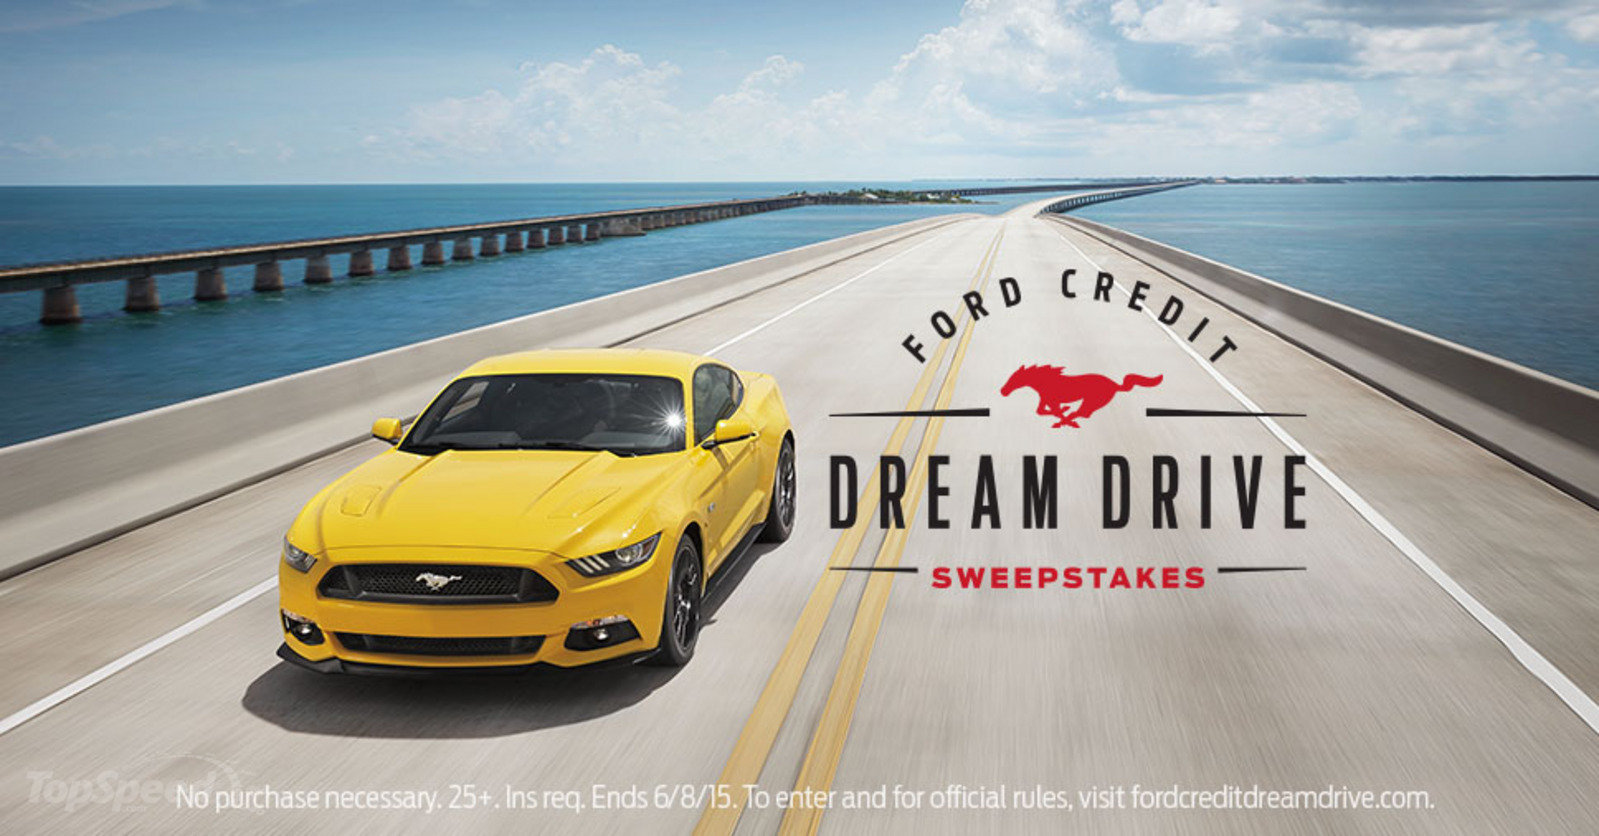 ford credit dream drive sweepstakes offers you the chance to win a trip in a 2015 mustang news. Black Bedroom Furniture Sets. Home Design Ideas